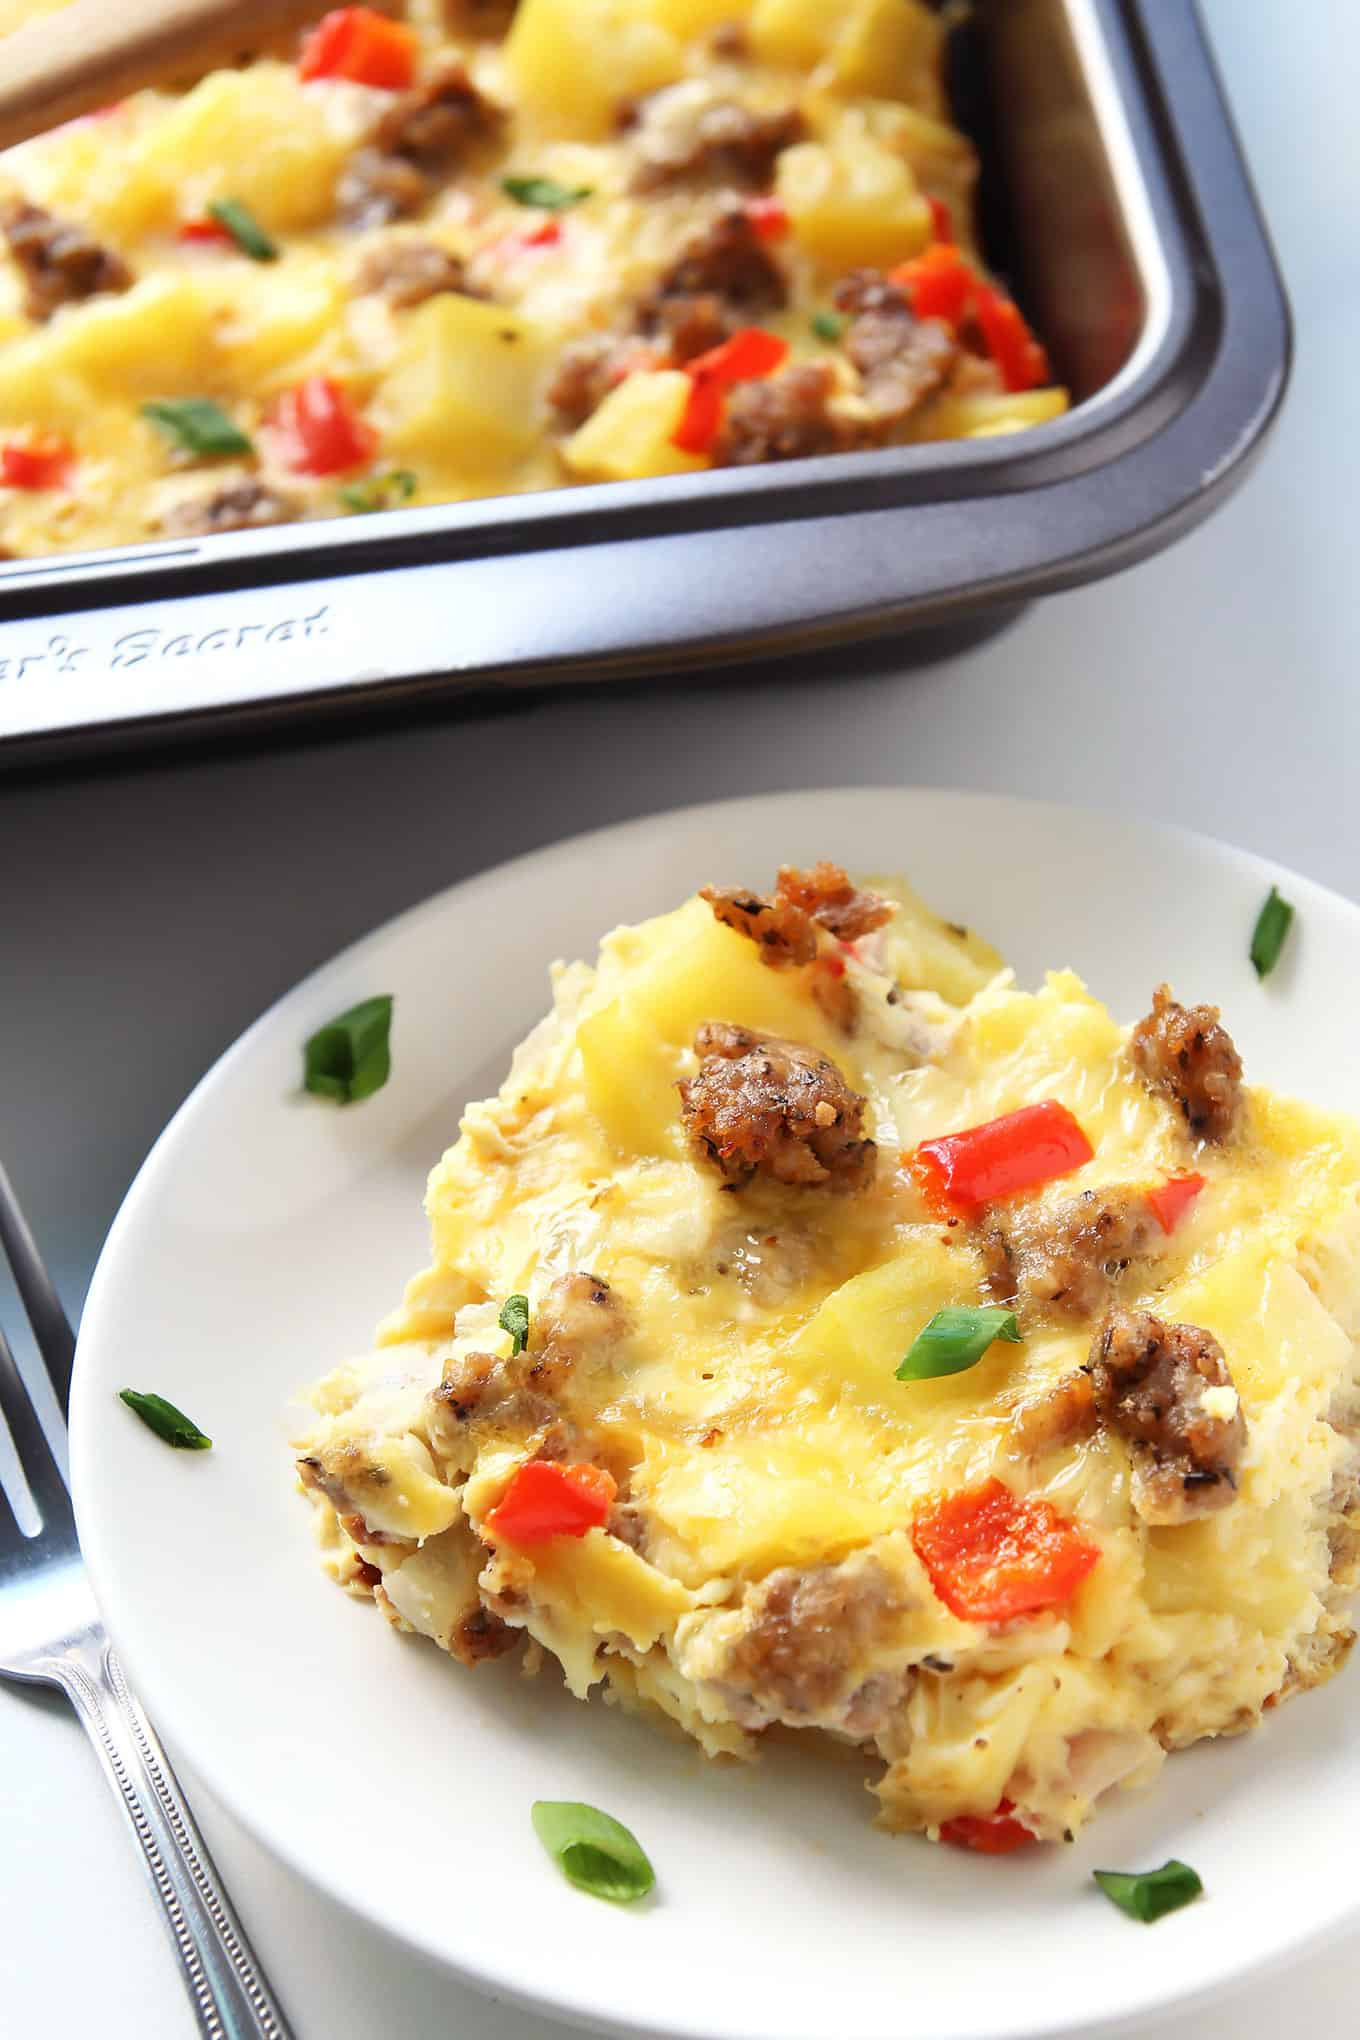 Easy Breakfast Casserole Recipes  egg and sausage breakfast casserole recipe